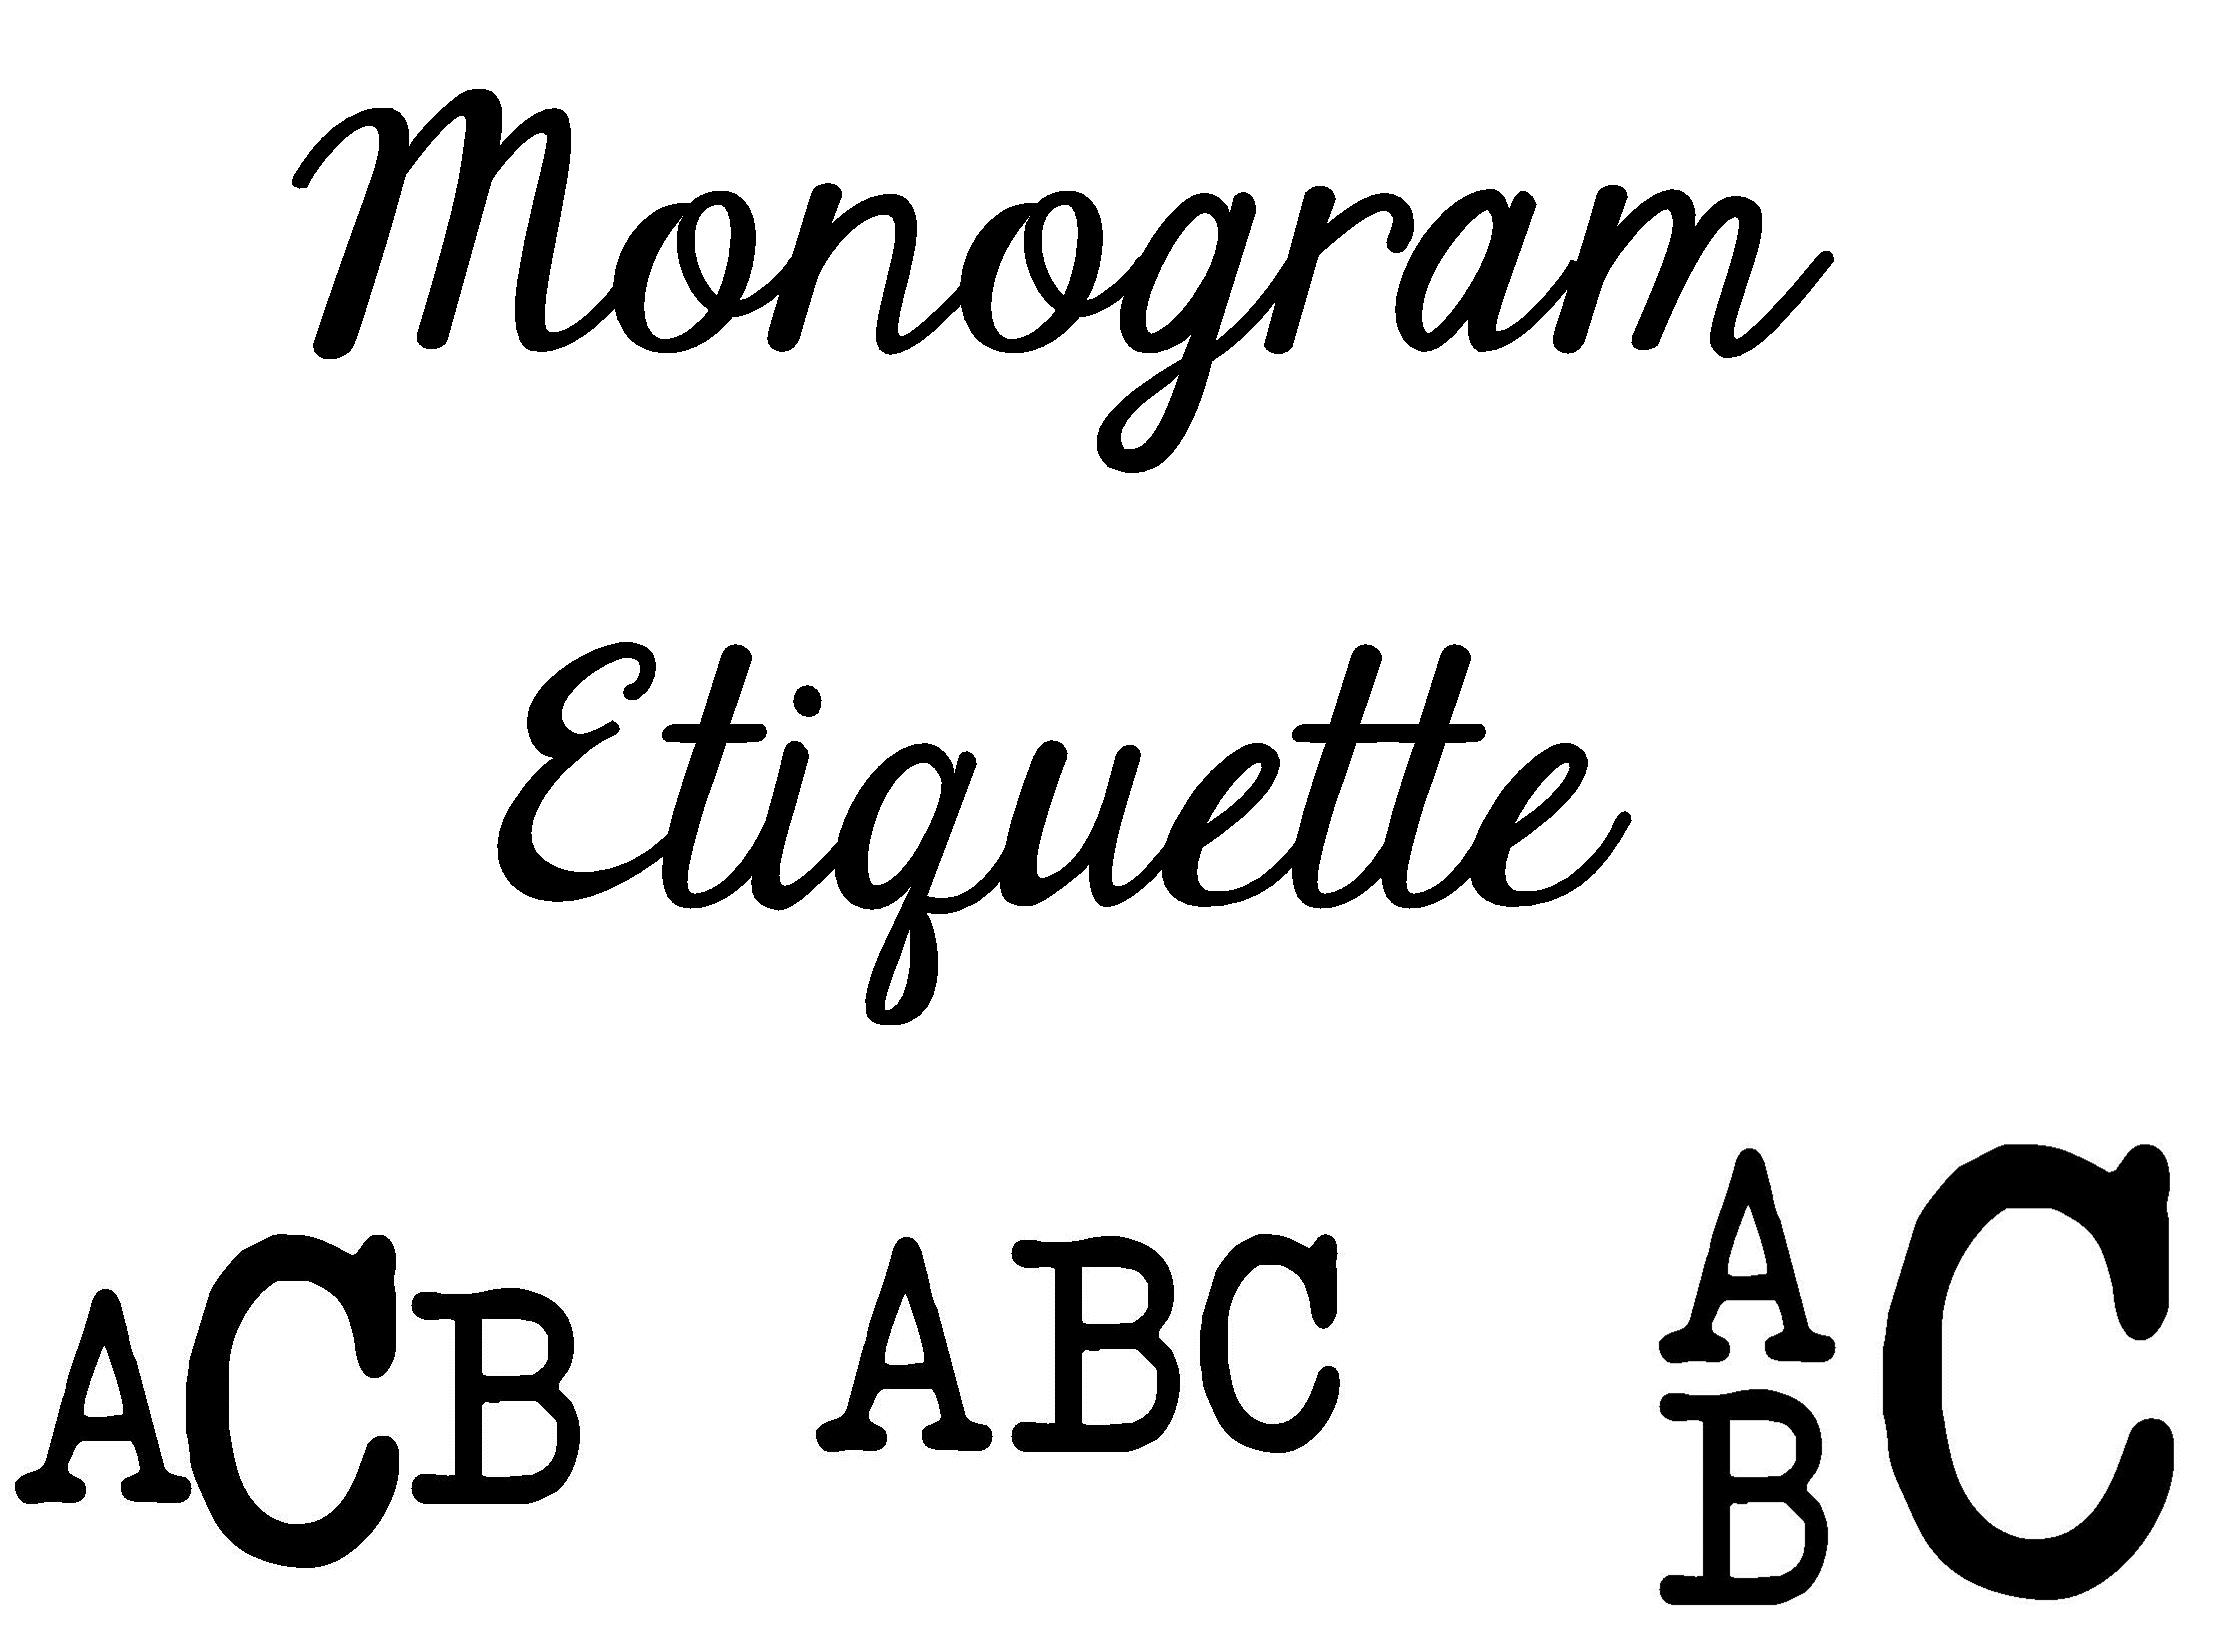 monogram etiquette tips and tricks for monograms